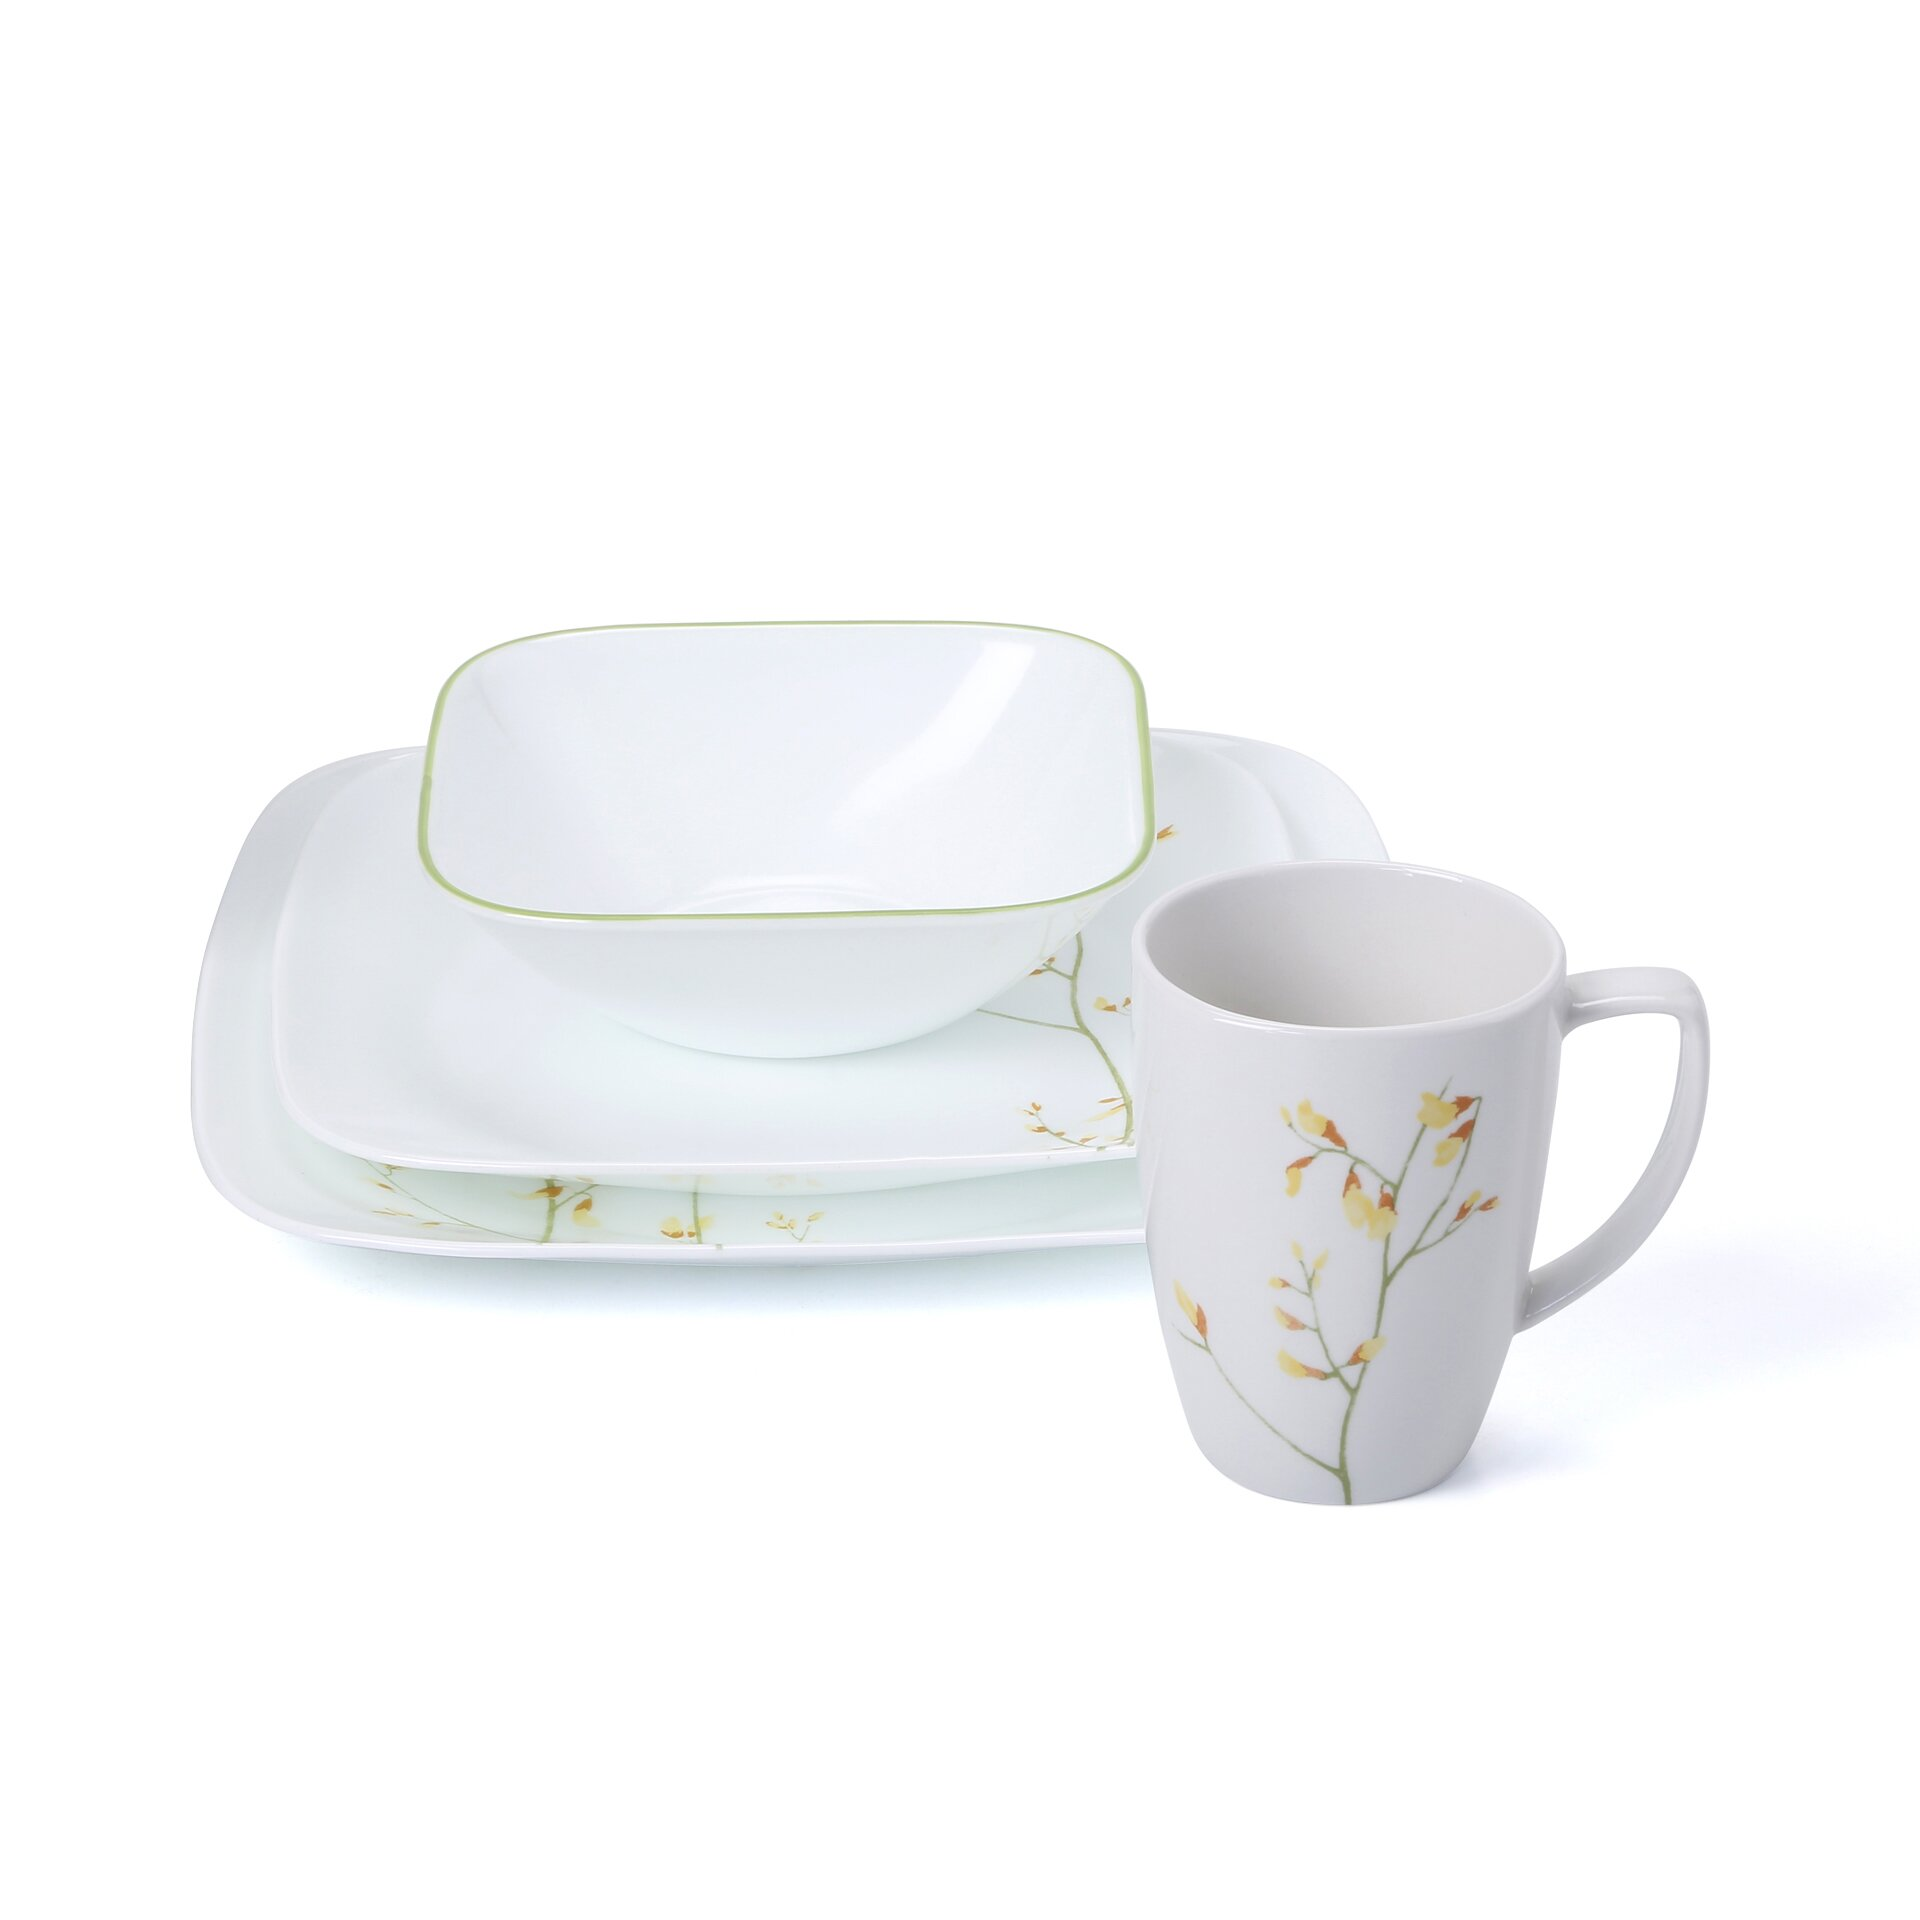 Corelle Kobe 16 Piece Dinnerware Set Reviews Wayfair  sc 1 st  Castrophotos & Corelle Dinnerware Set - Castrophotos